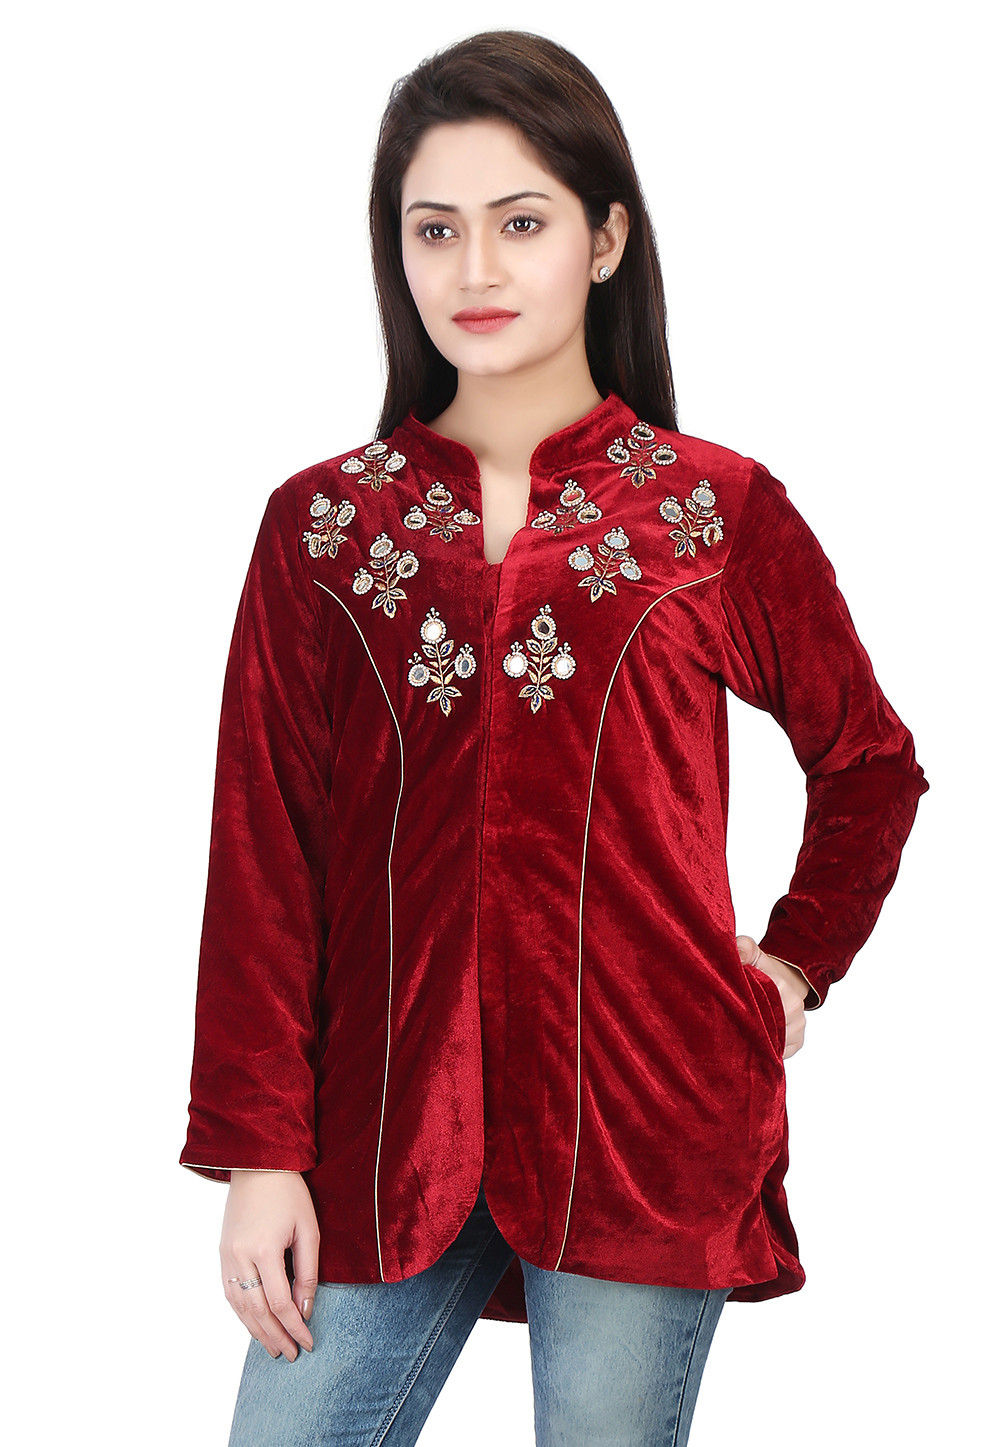 Embroidered Velvet Jacket in Maroon